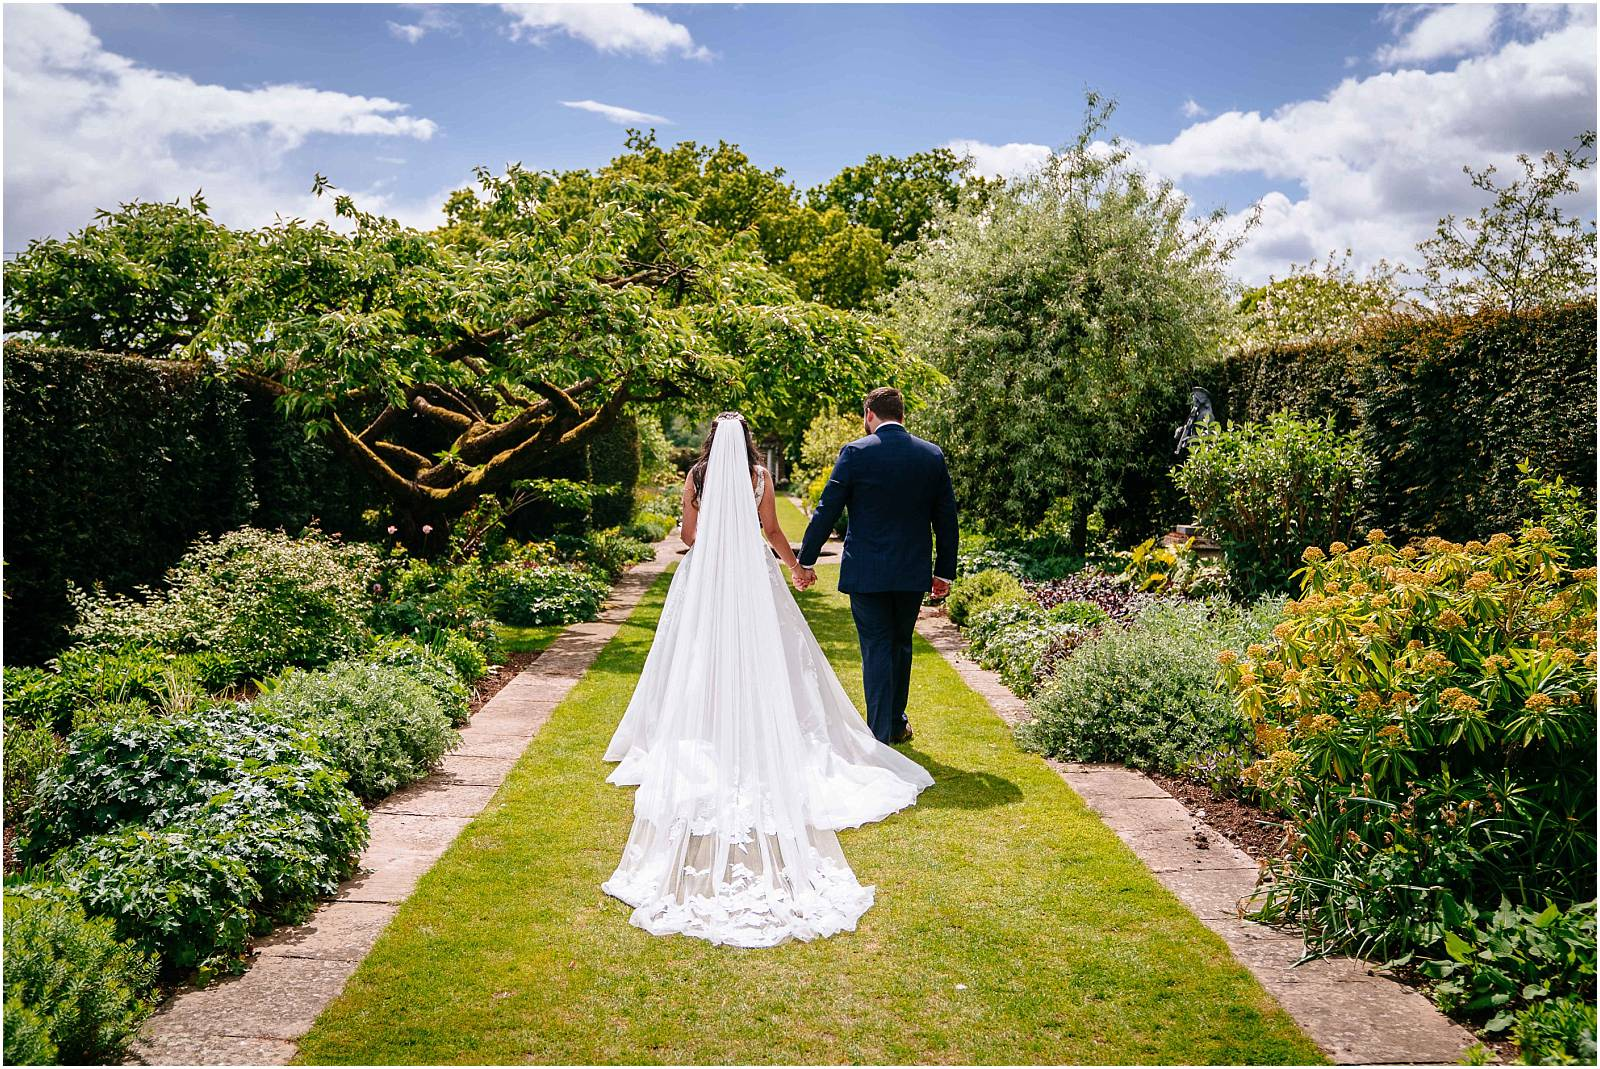 Micklefield Hall Wedding Photography – Helen & Oliver's Hertfordshire Wedding